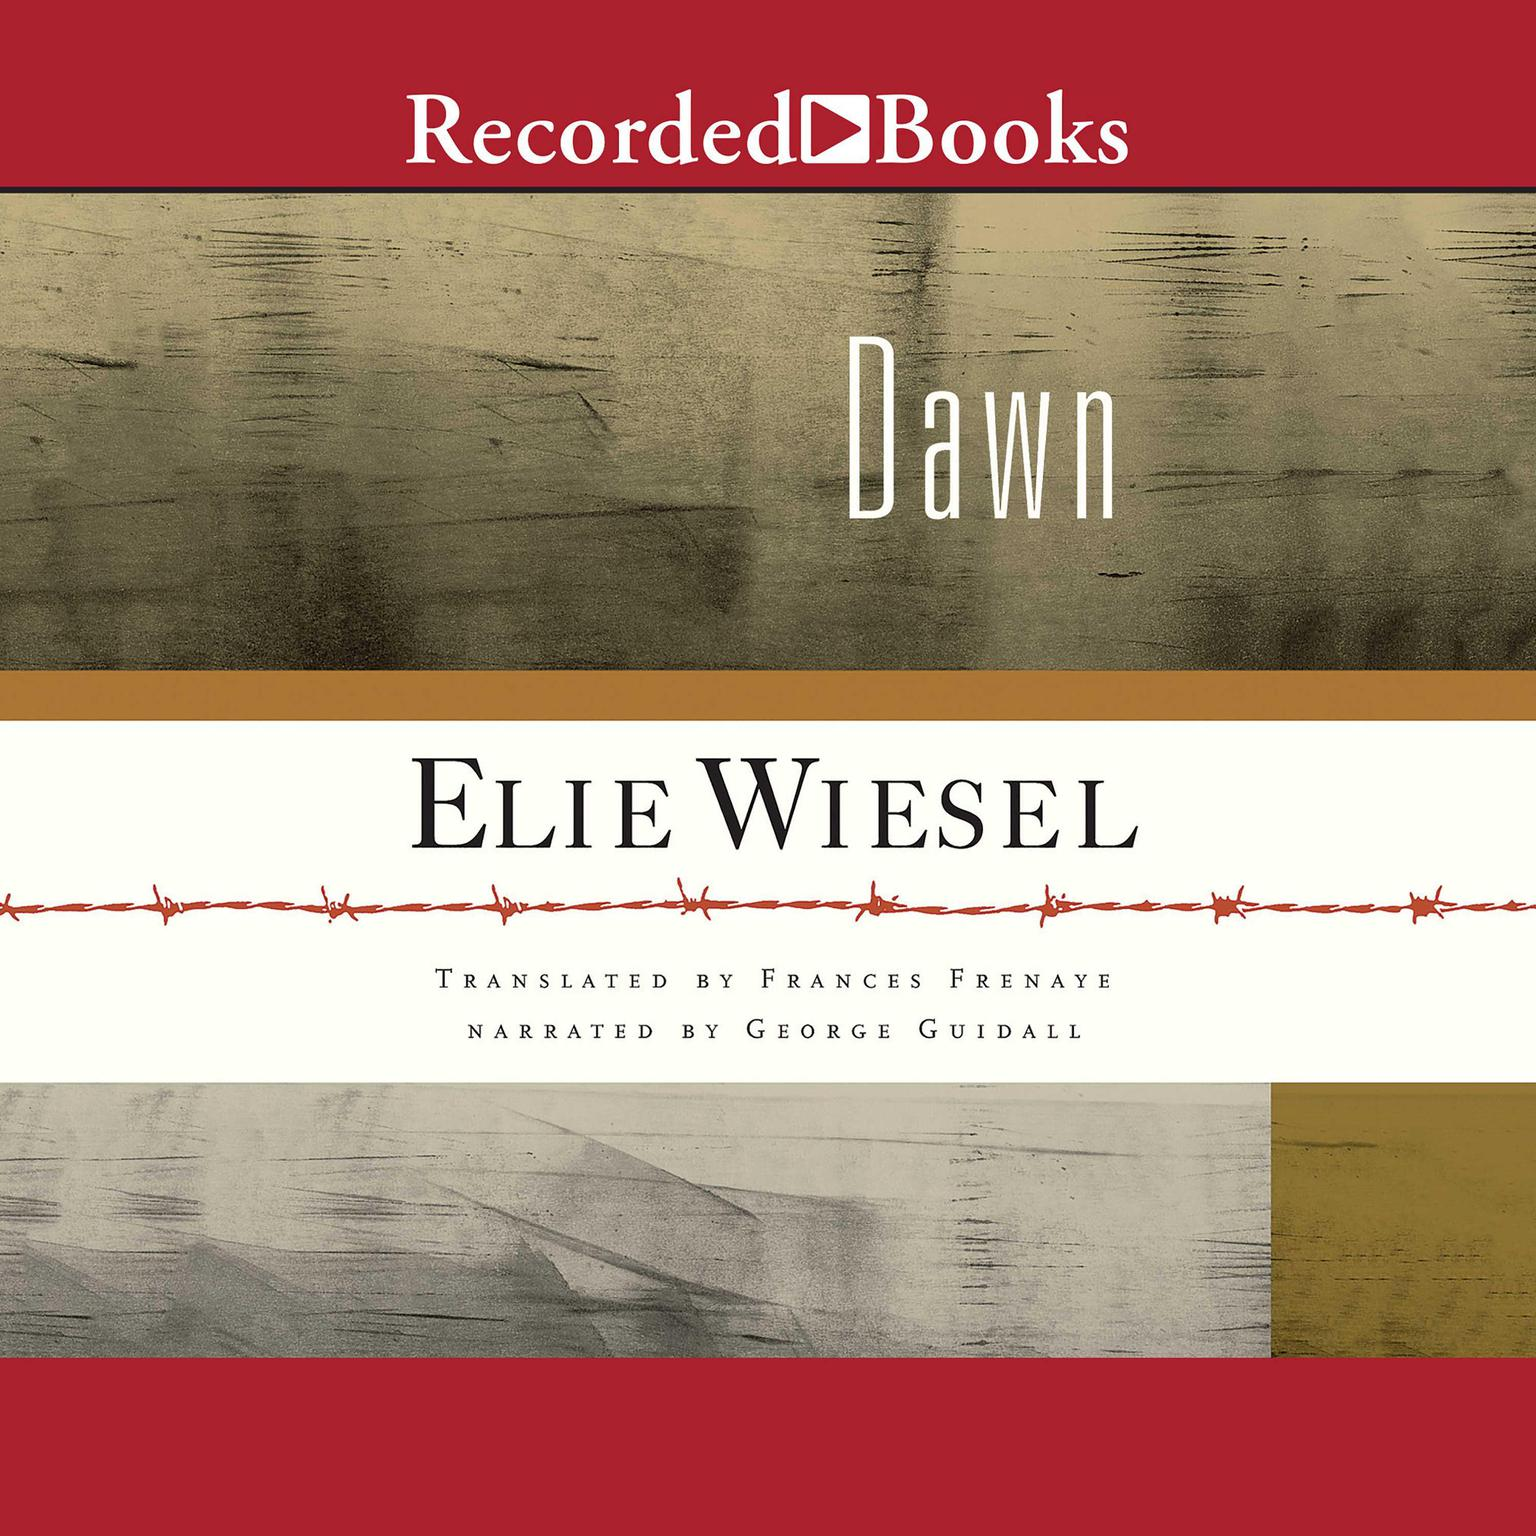 dawn elie wiesel full text